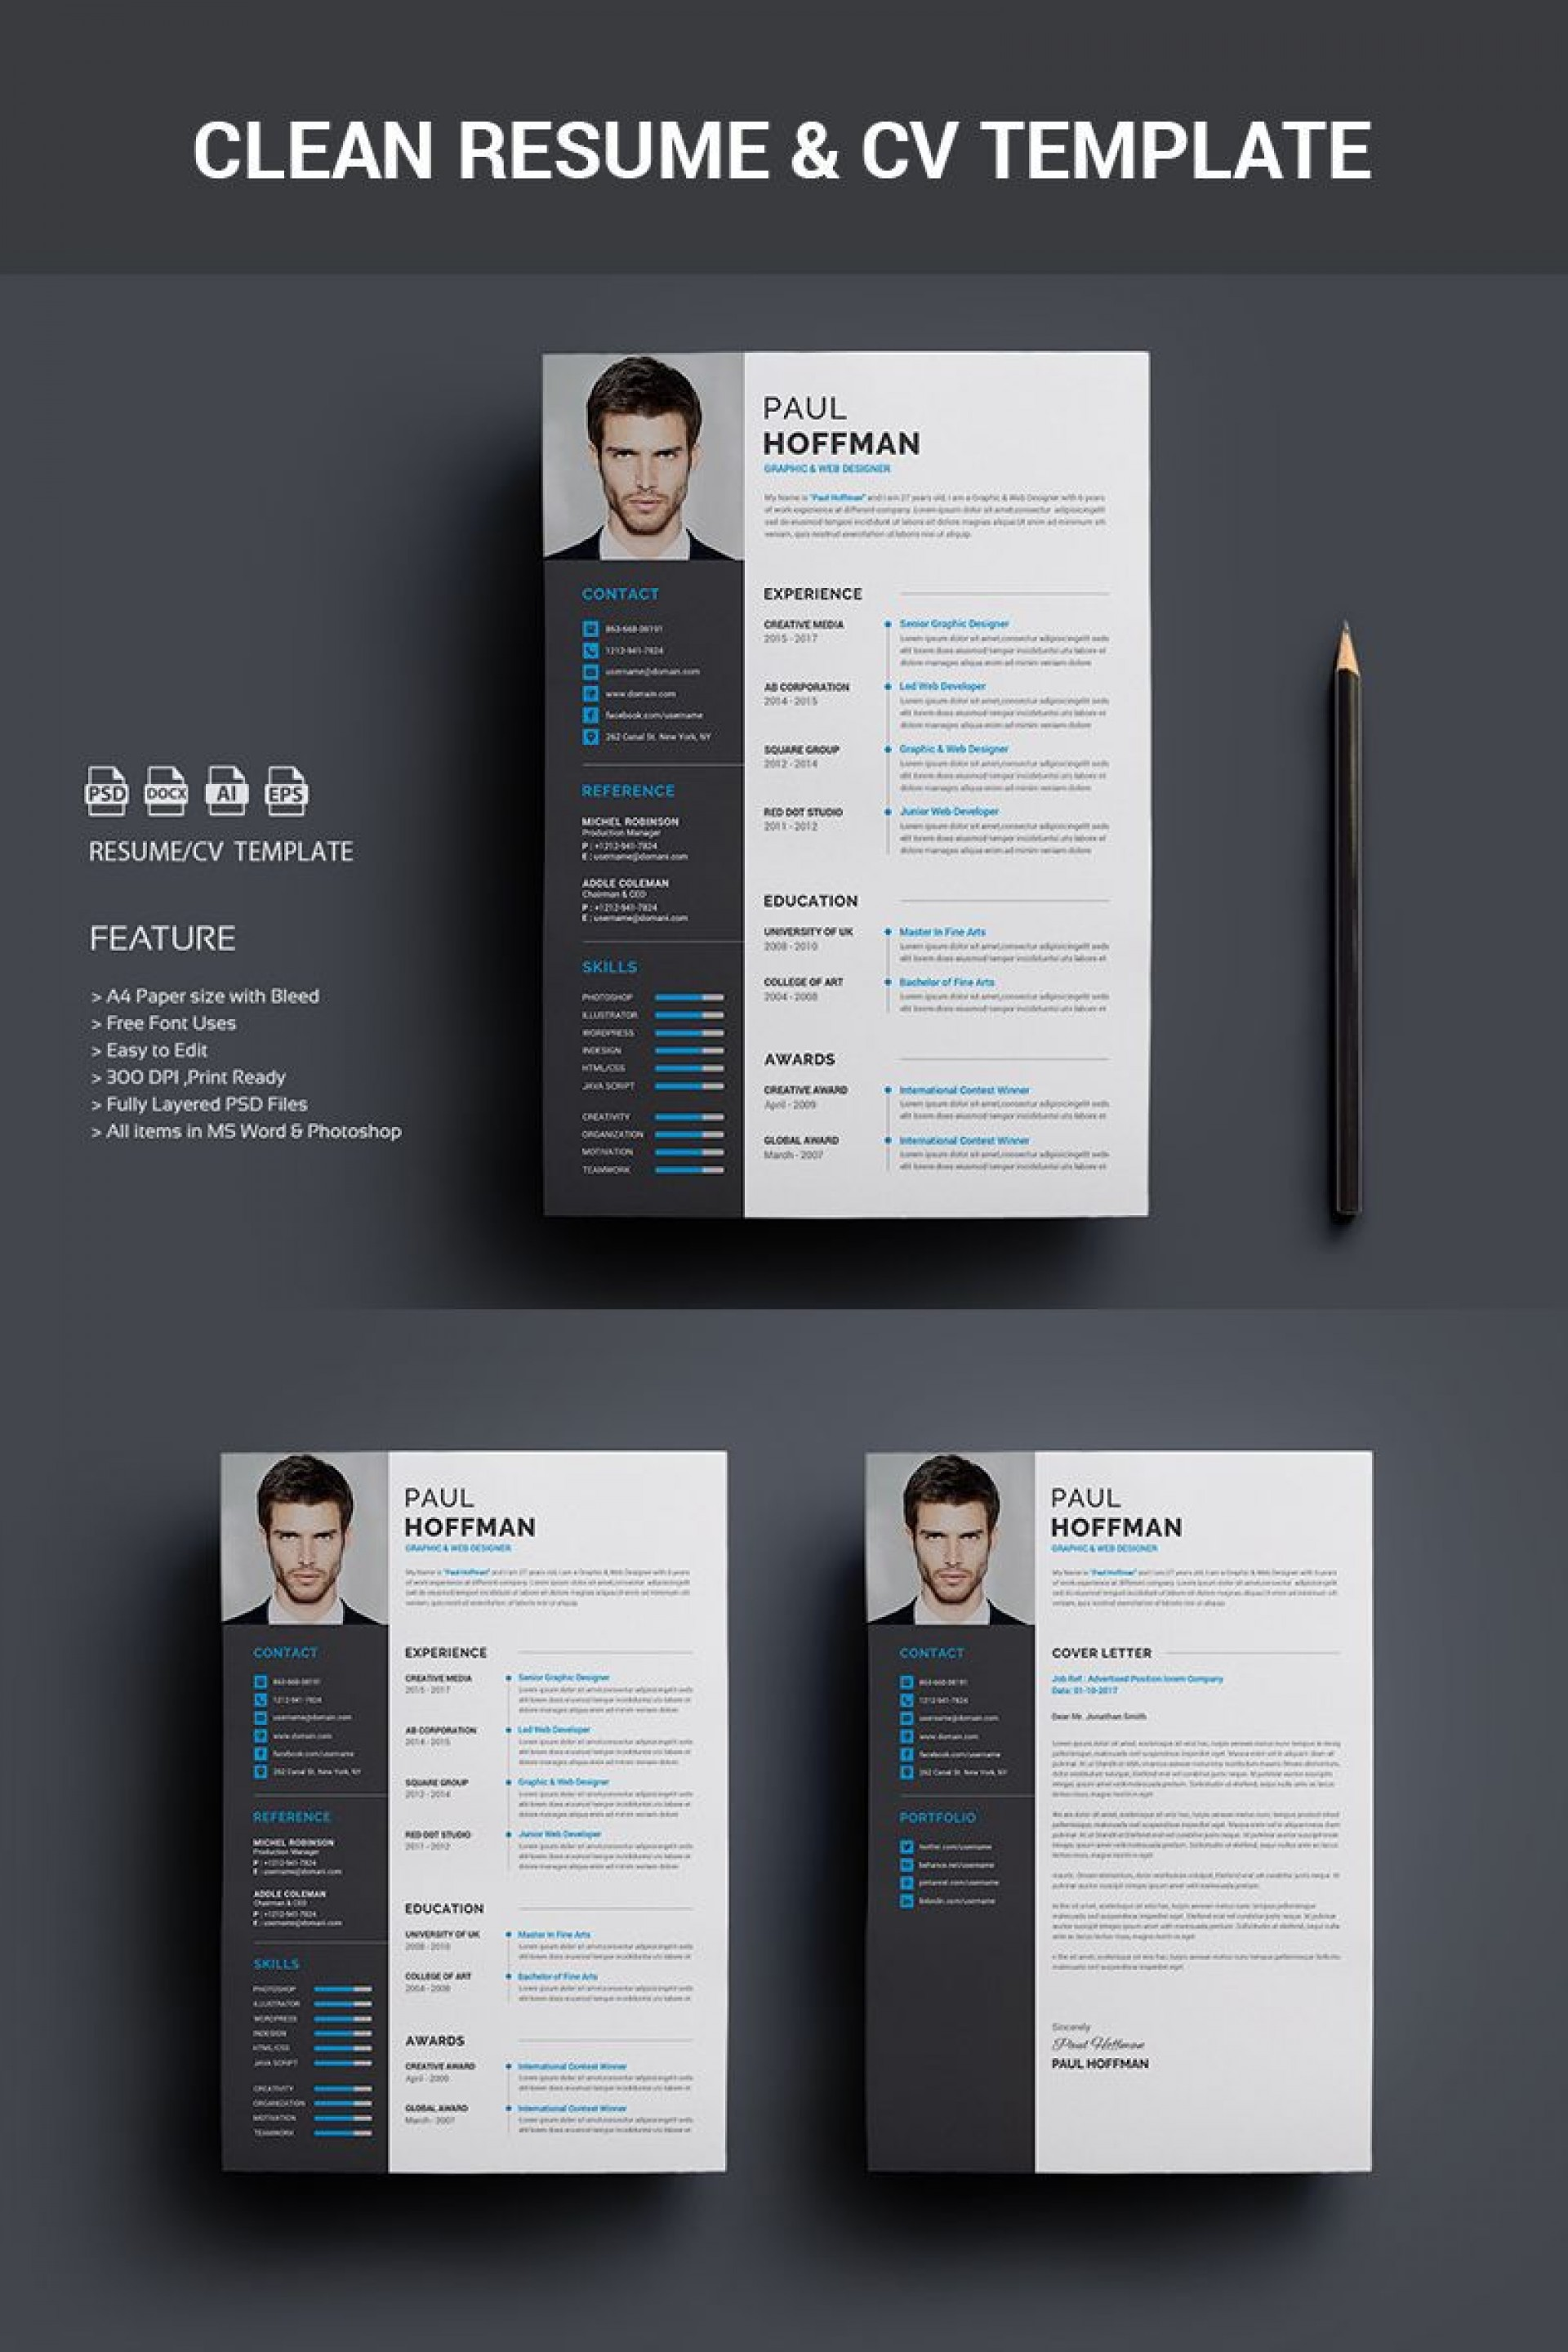 001 Exceptional Psd Cv Template Free Image  2018 Vector Photo And File Download Architect1920